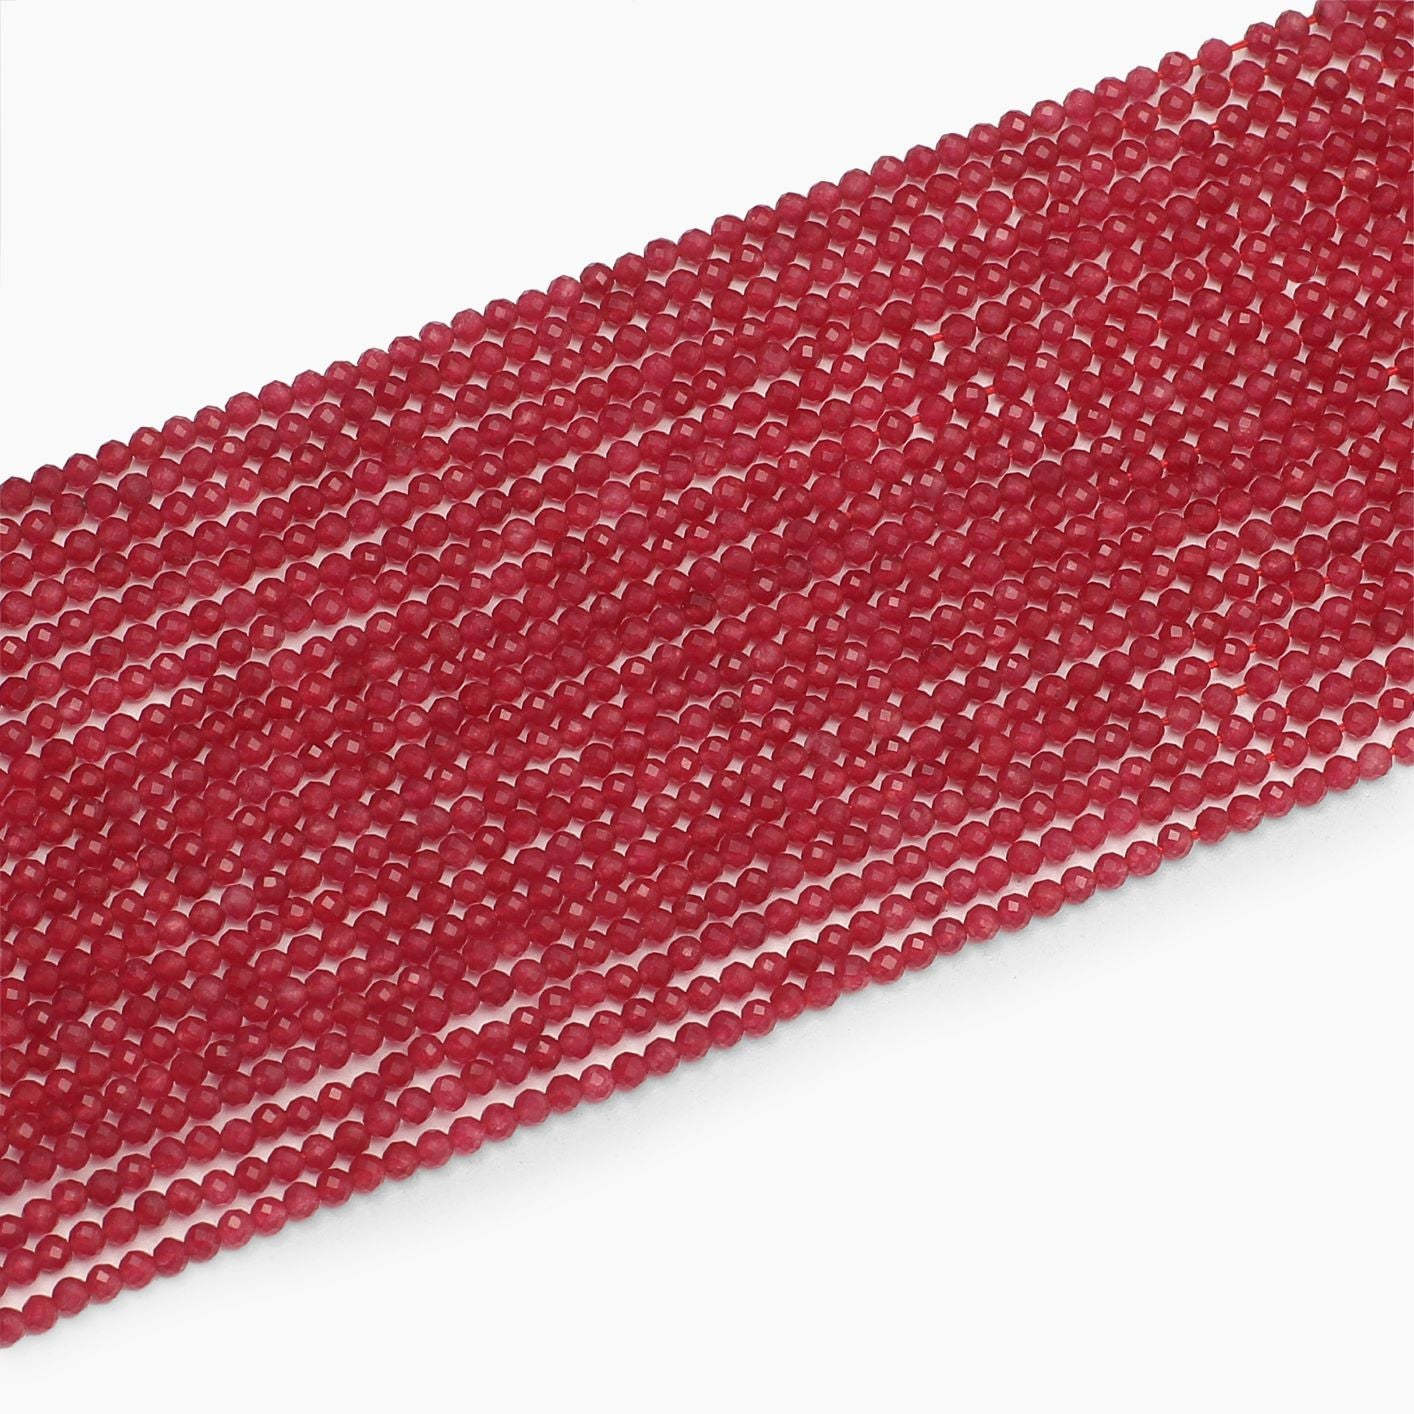 Ruby Jade Quartz Diamond Cutting Beads- Sold Per Strand